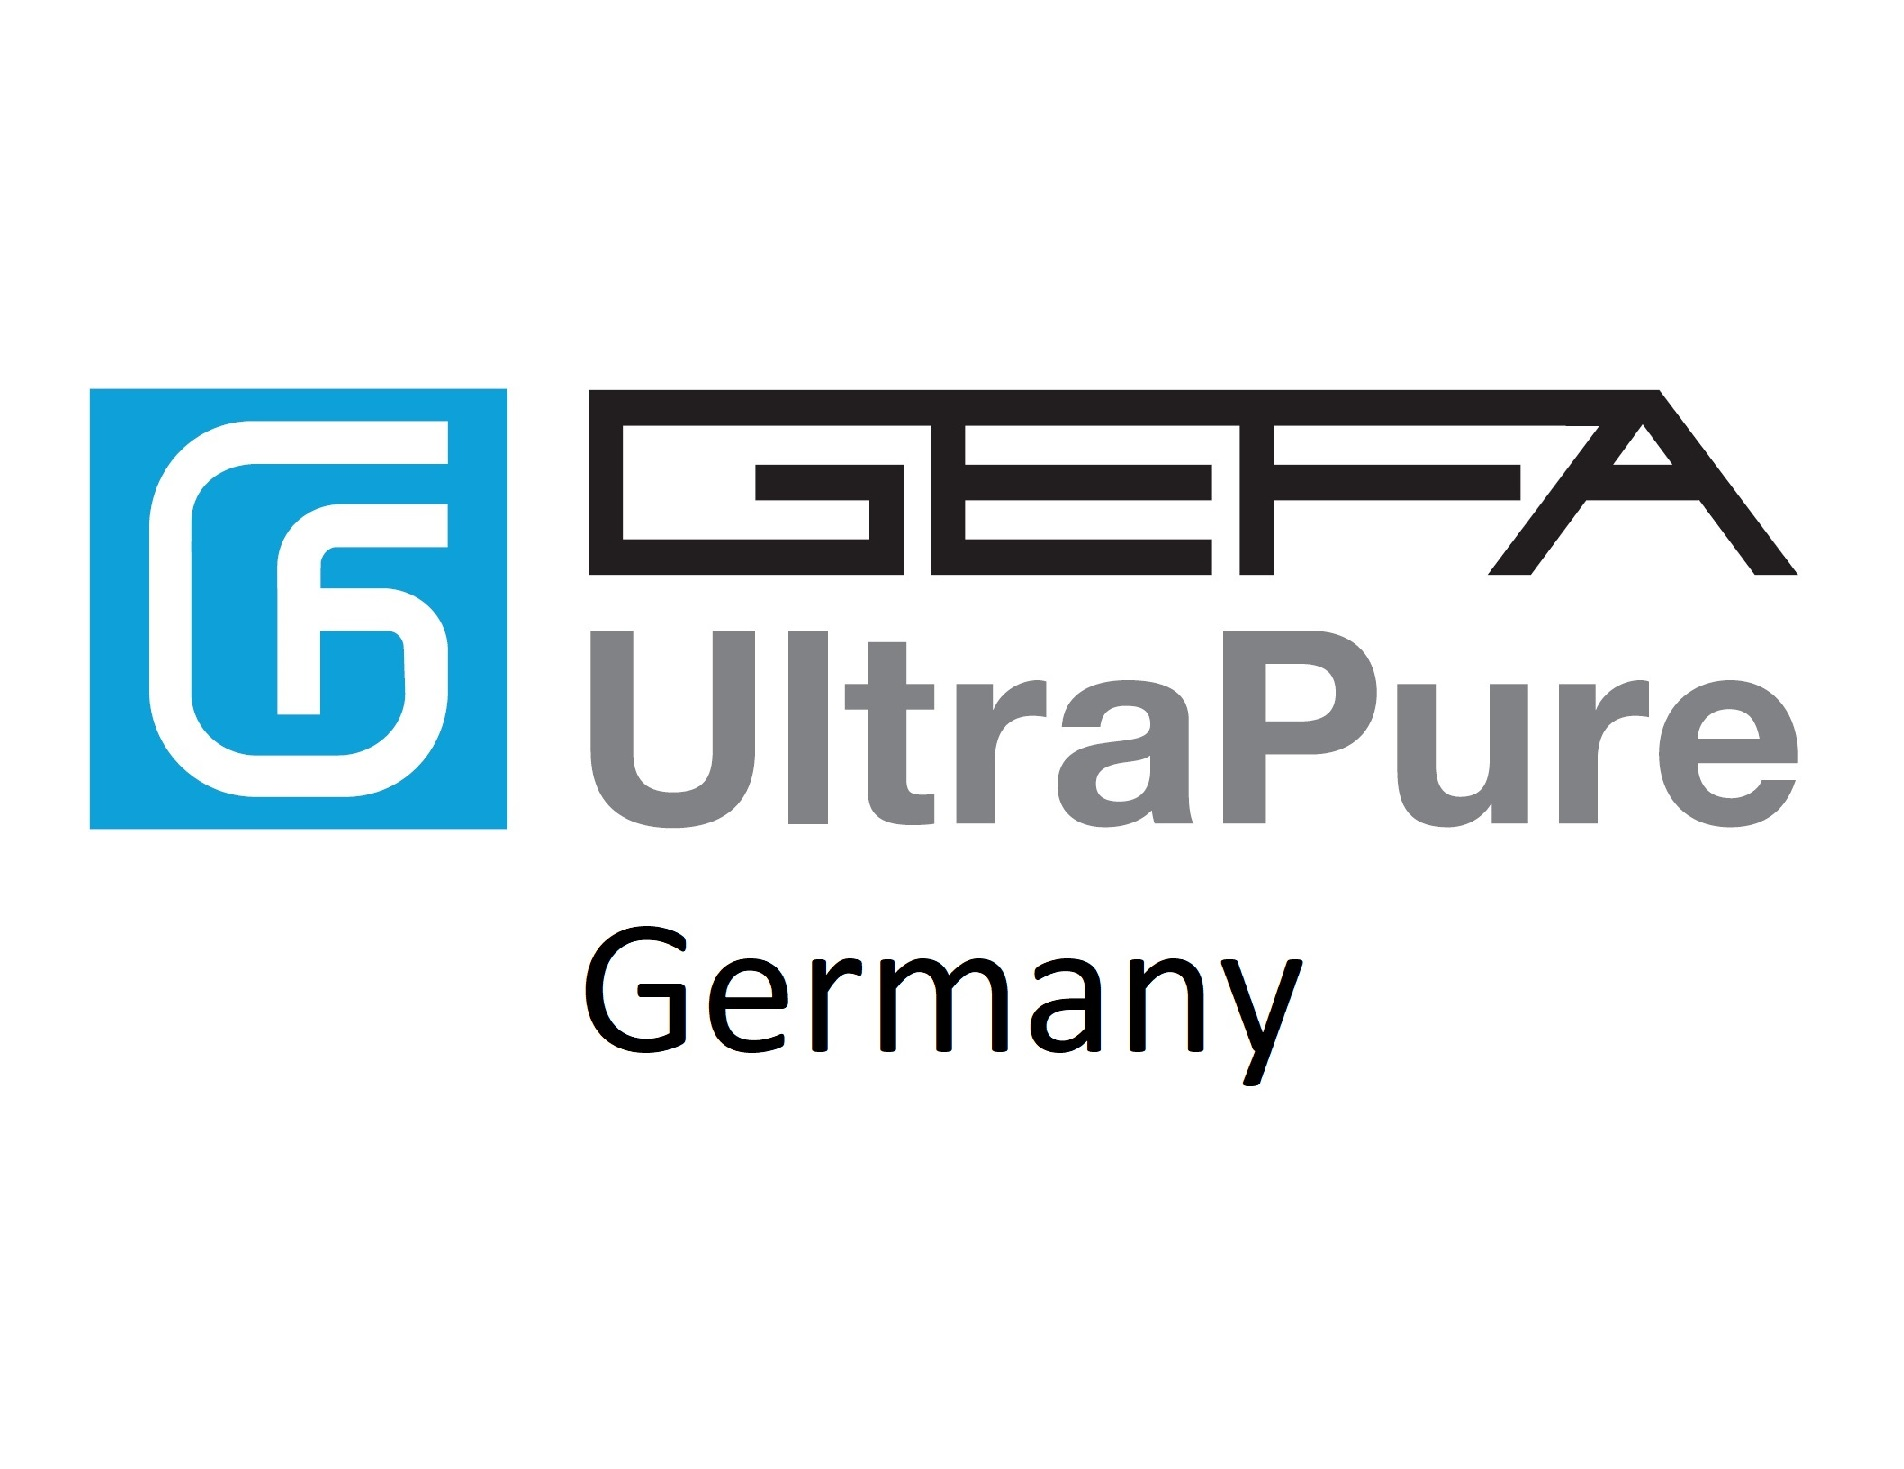 images/partner/GEFA_UltraPure_Logo_Germany.jpg